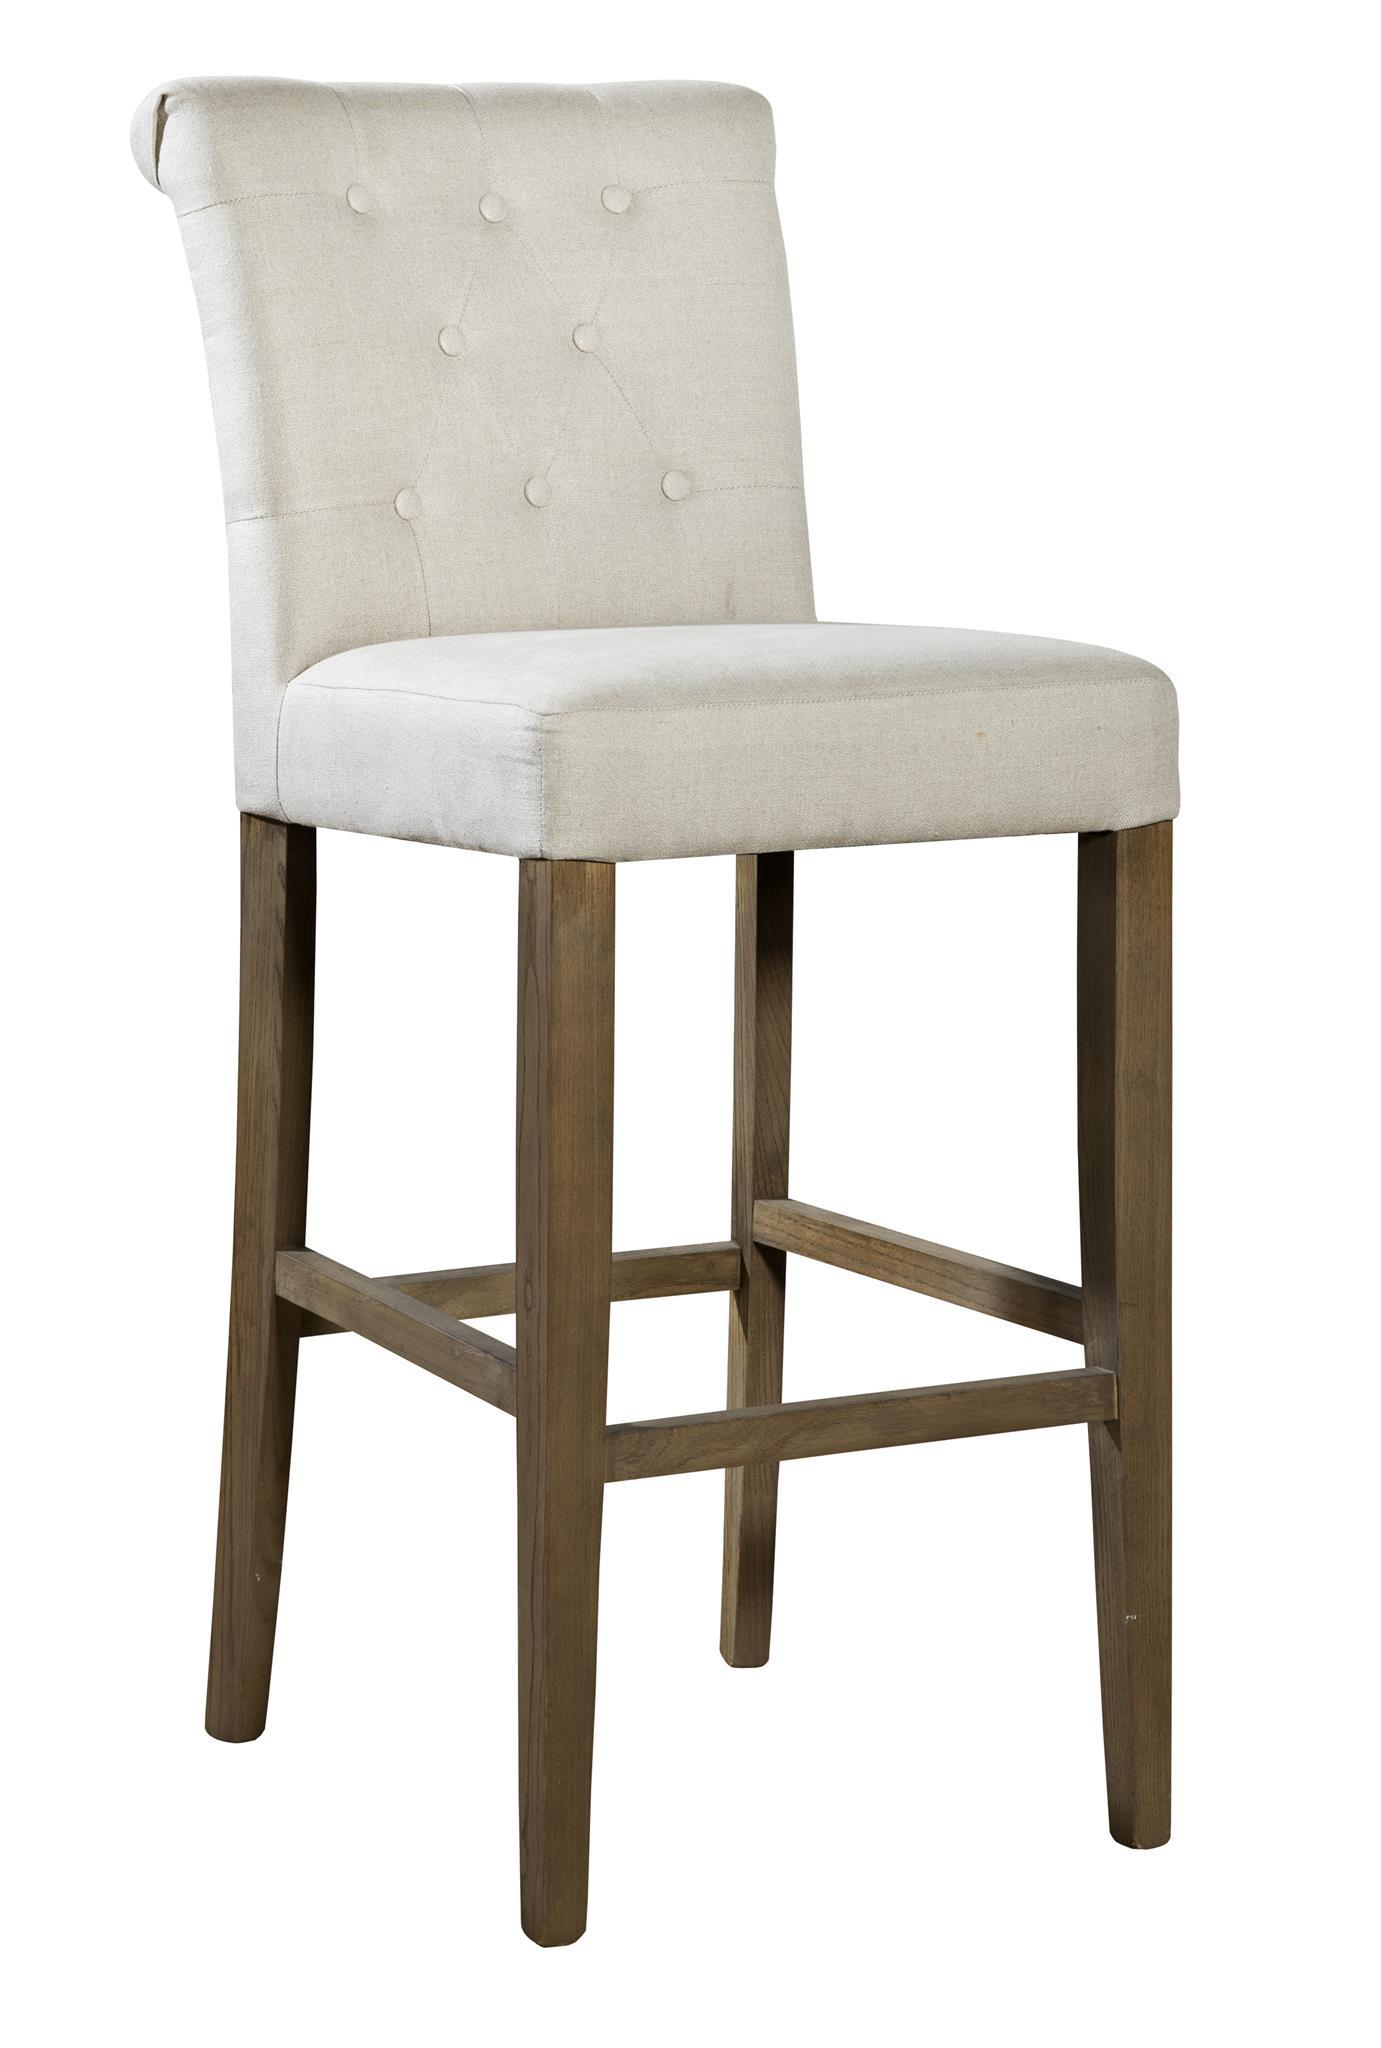 Furniture Classics Accents Perth Barstool - Item Number: 91-082BF